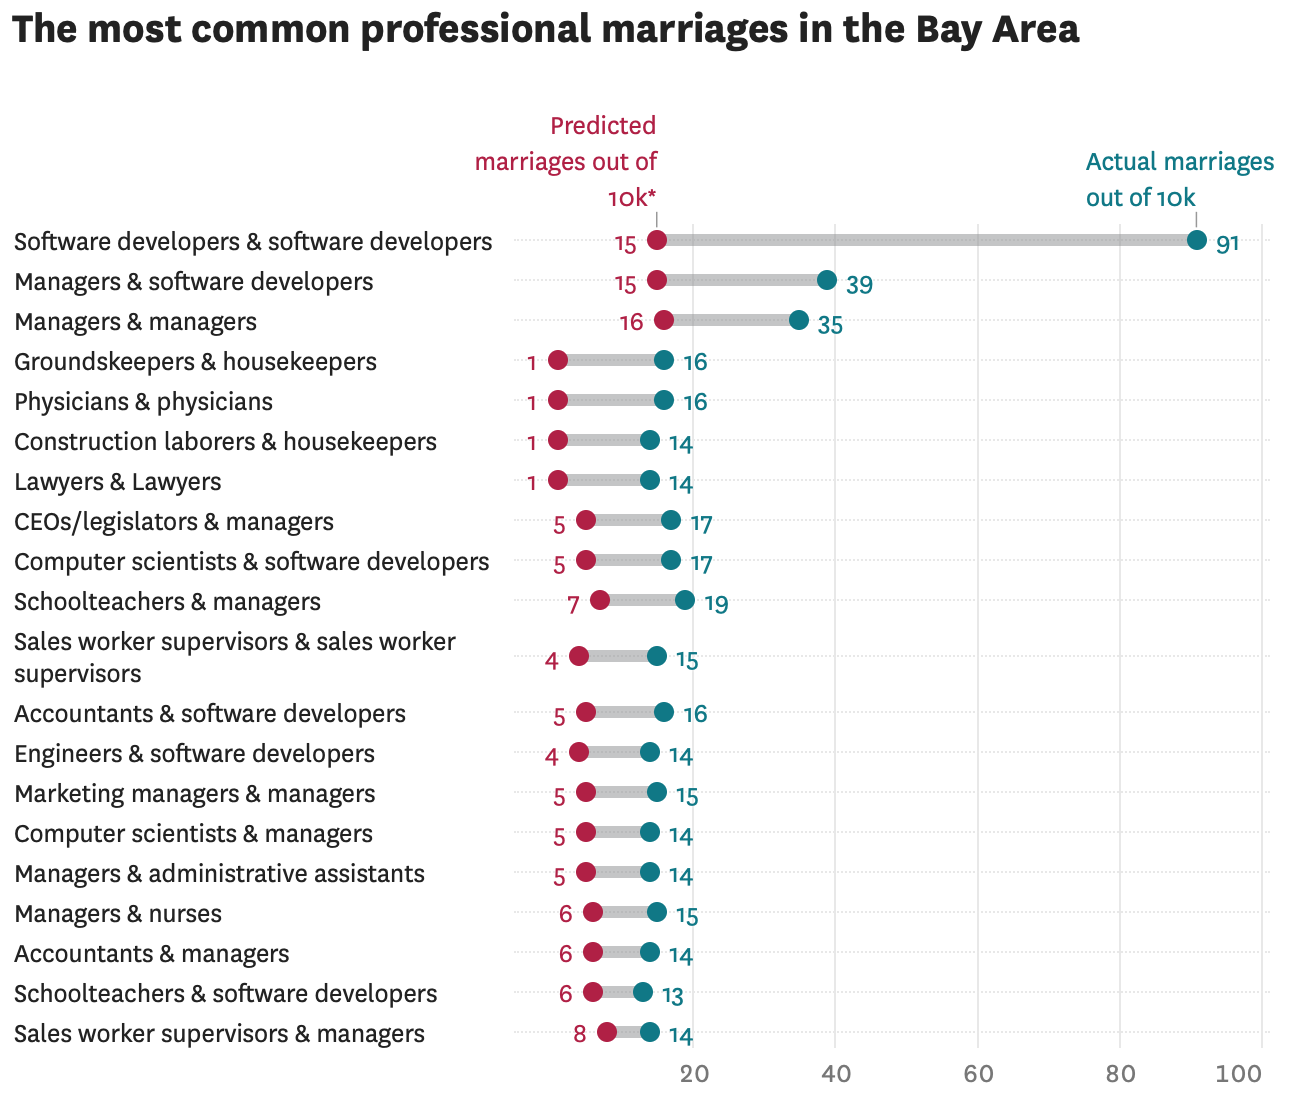 Most common professional marriages